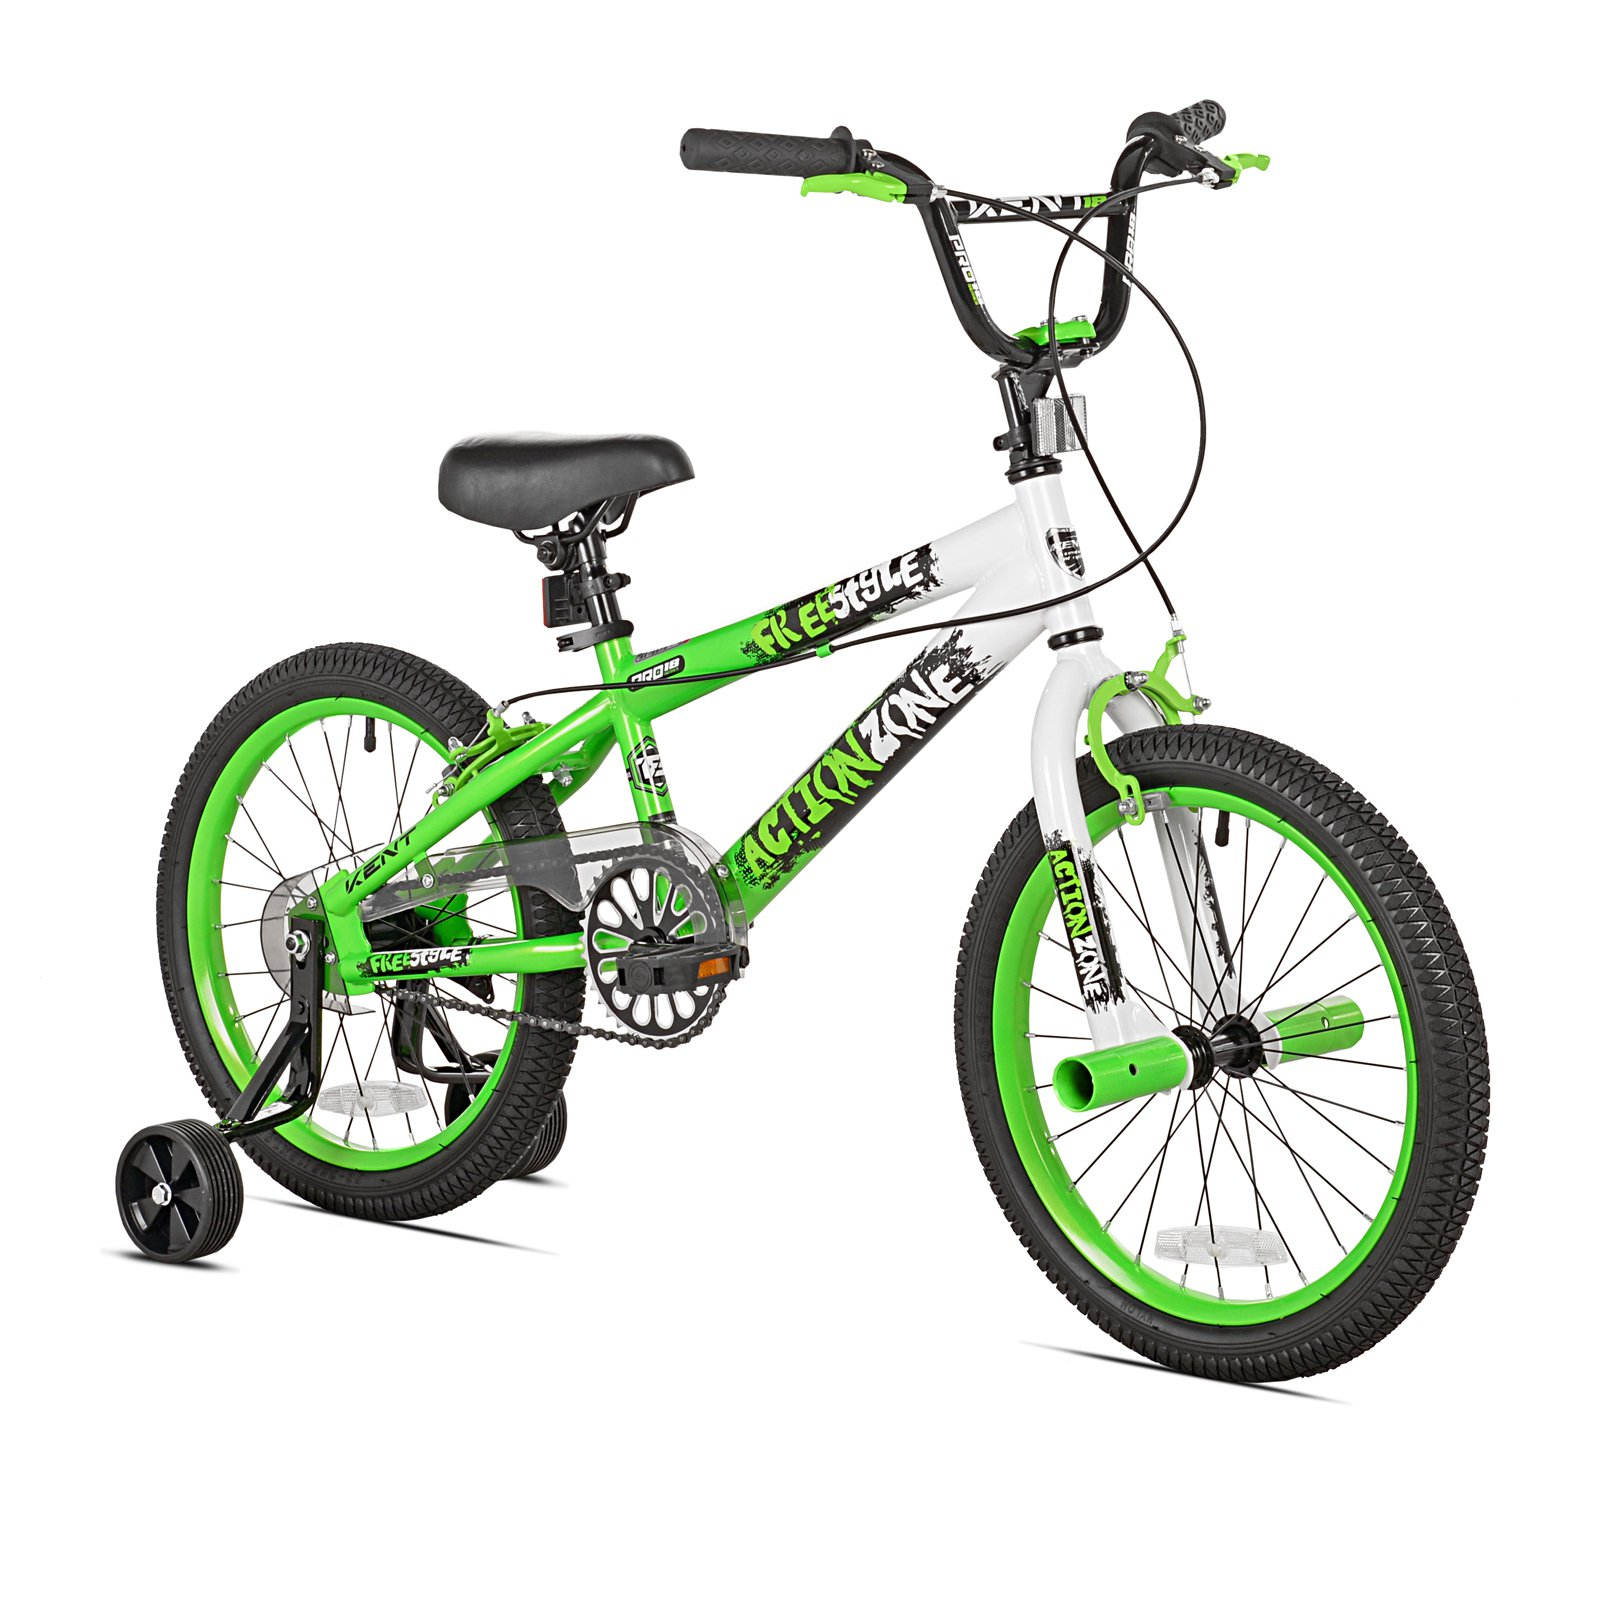 Kent 18 in. Action Zone Bike by KENT International Inc.